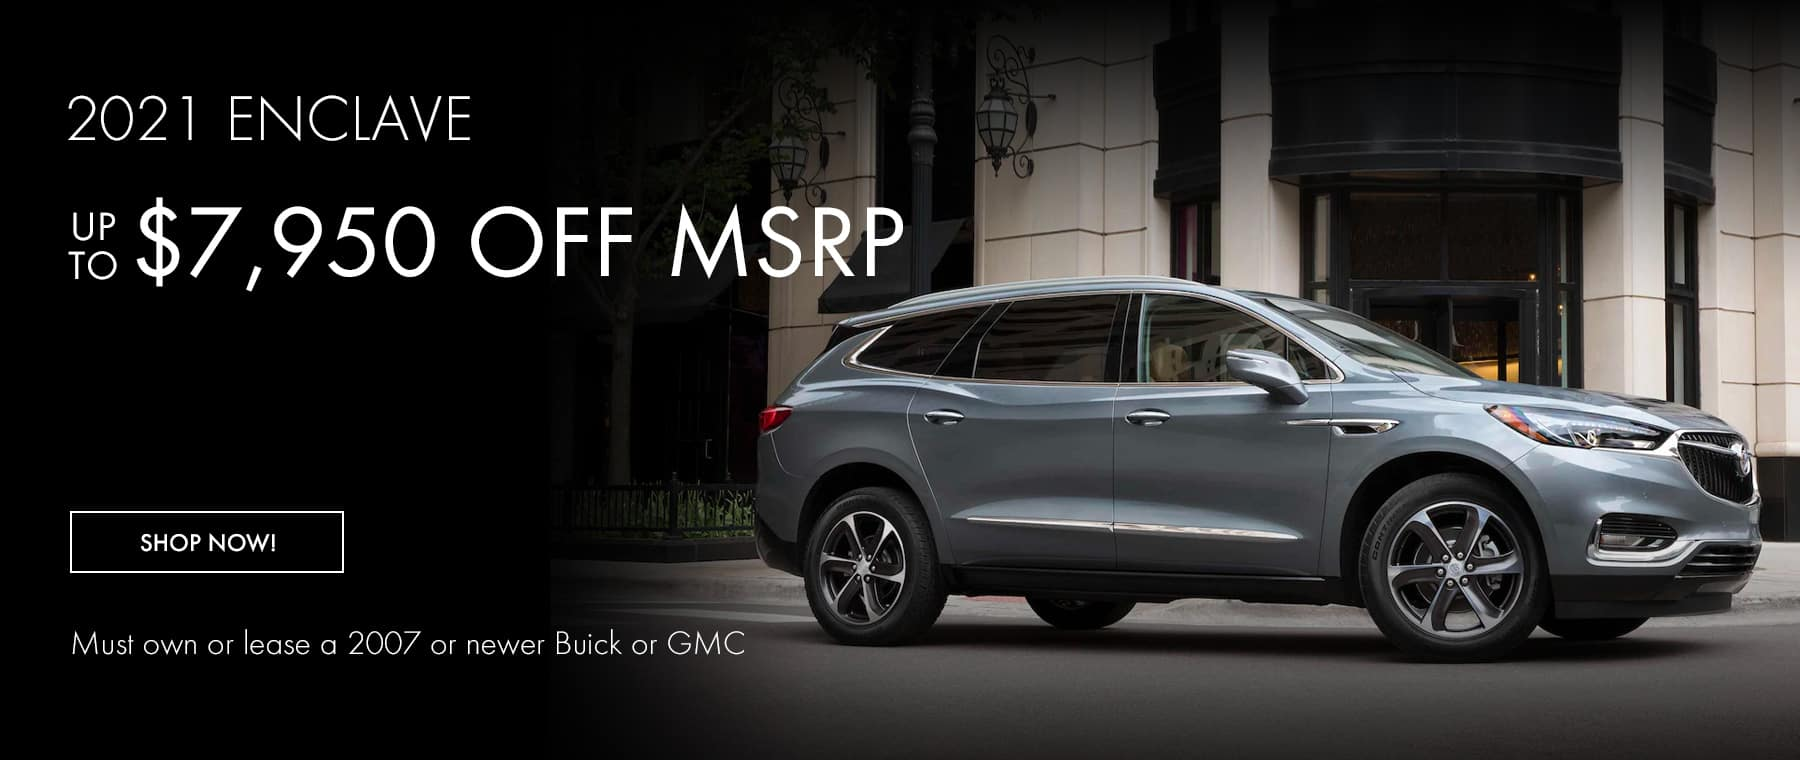 2021 Enclave up to $7,950 off MSRP